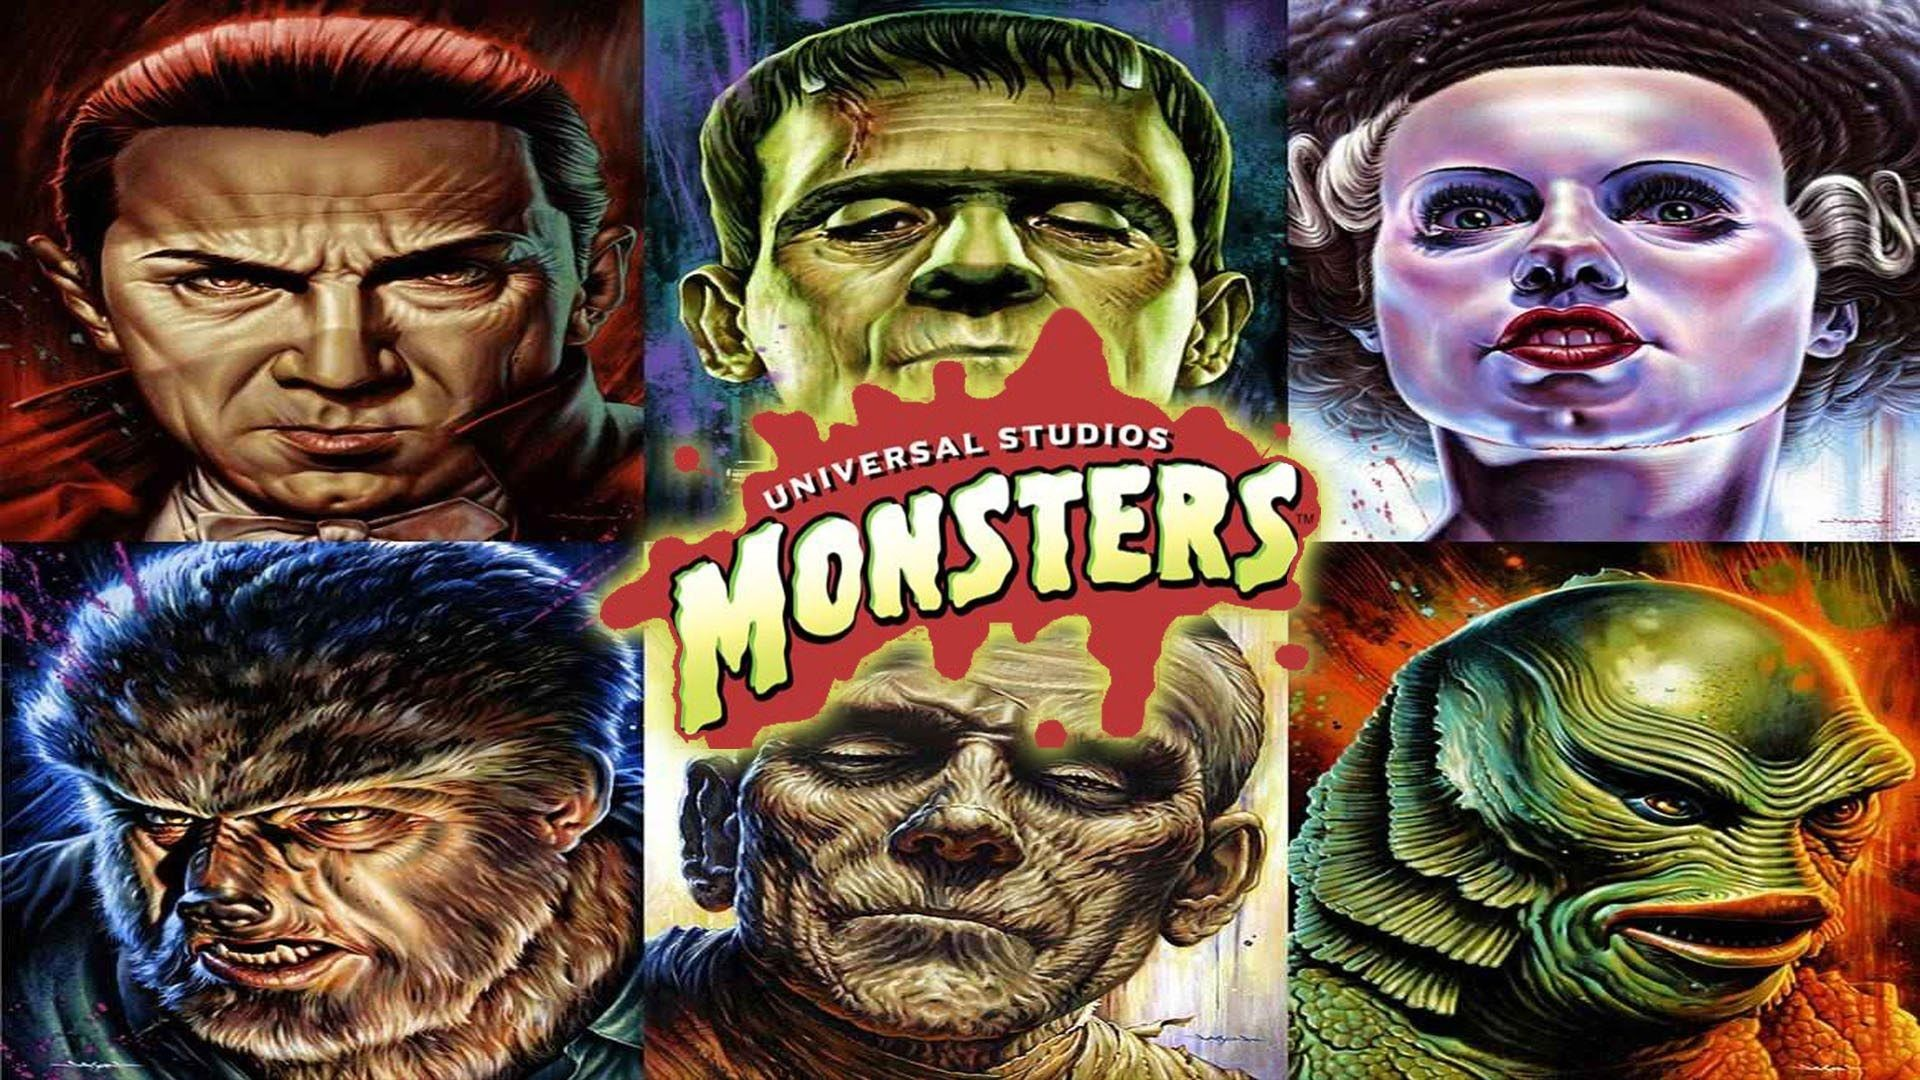 1920x1080 Whats going on with the universal monsters cinematic universe wallpaper  zone jpg  Classic movie monsters